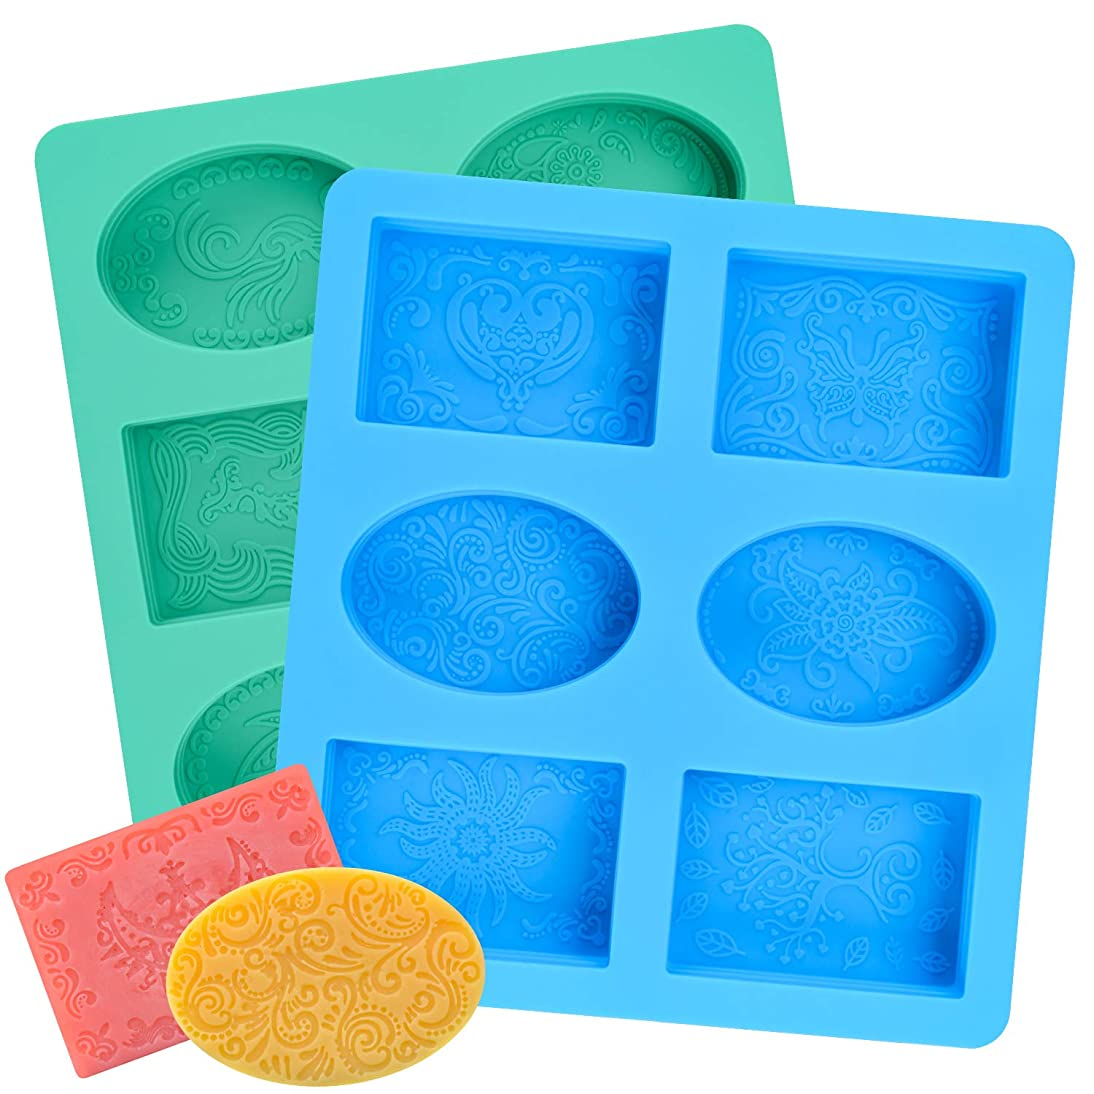 2 Pcs SJ Silicone Soap Molds, 12-Pattern, Rectangle & Oval, Hand Soap Silicone Molds for Kids, Non-Stick & BPA Free (Blue & Mint Green)